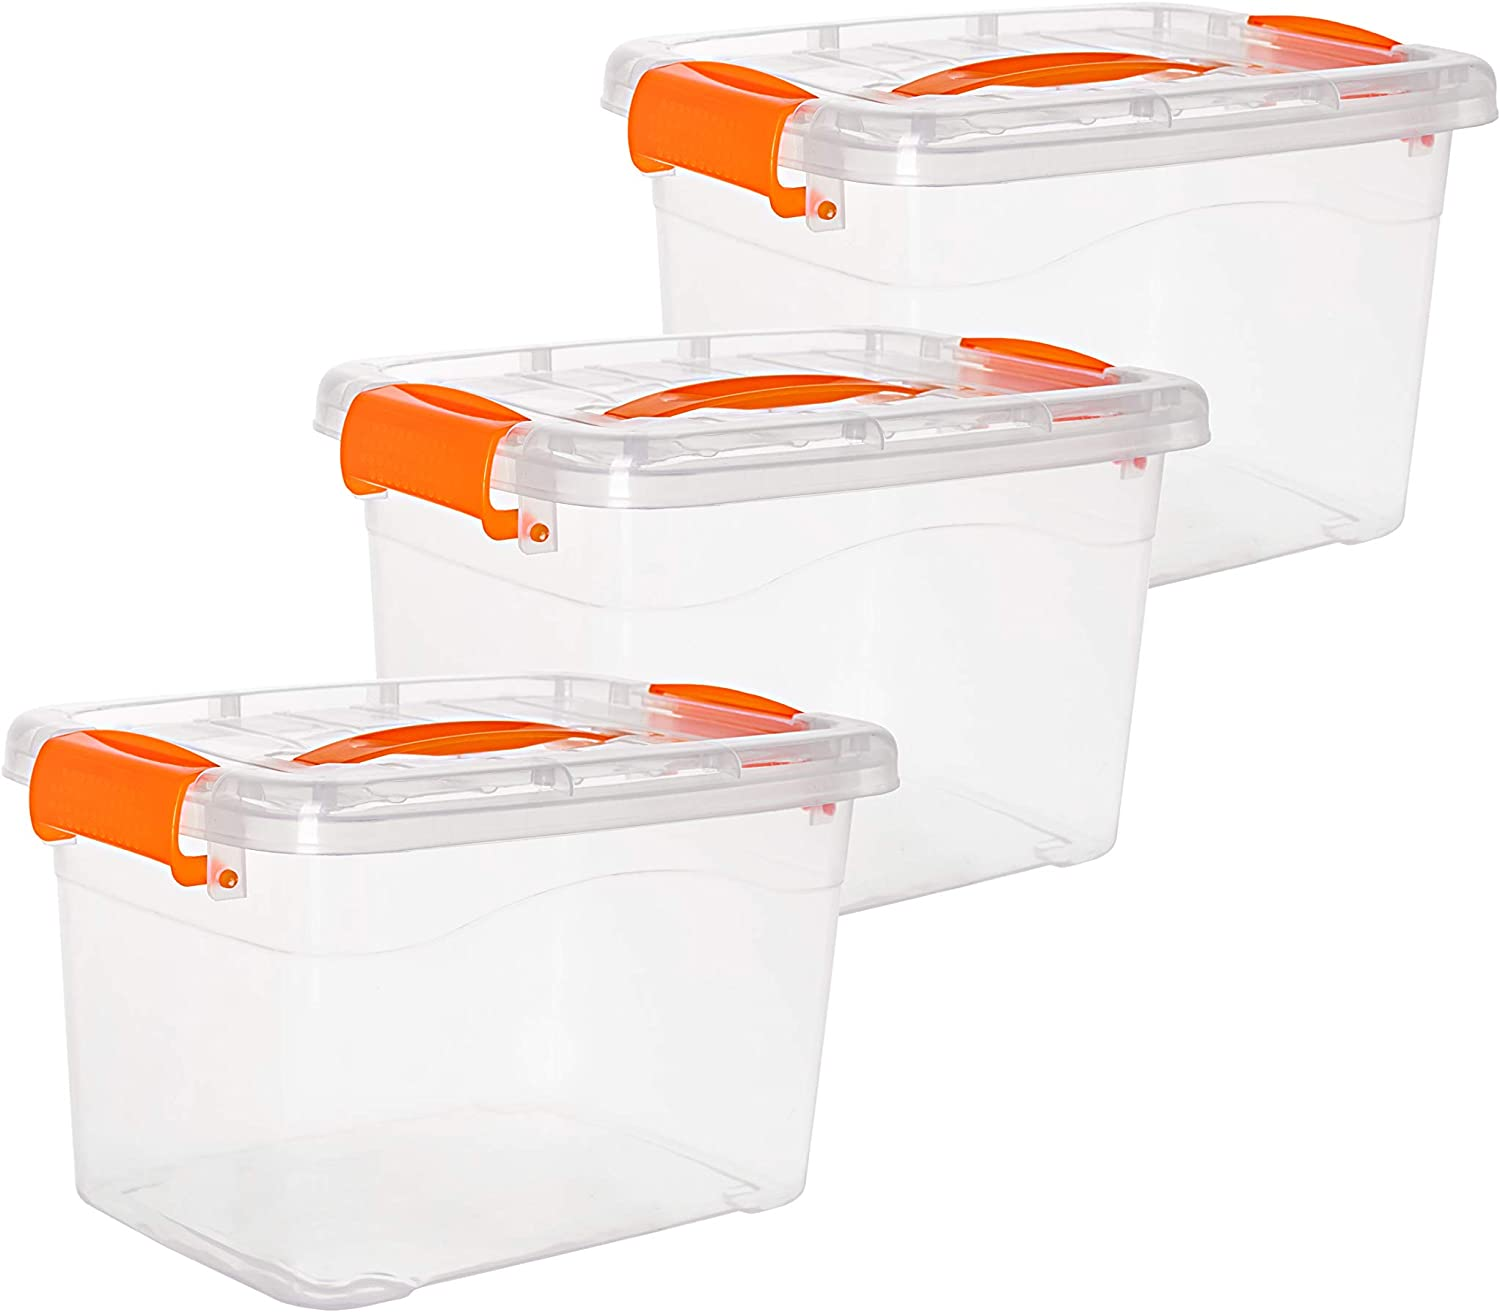 Noble Designs 6 qt Storage containers with lids | Perfect for Food, Toy and Personal Storage | Set of 3 | Orange latches and Handle